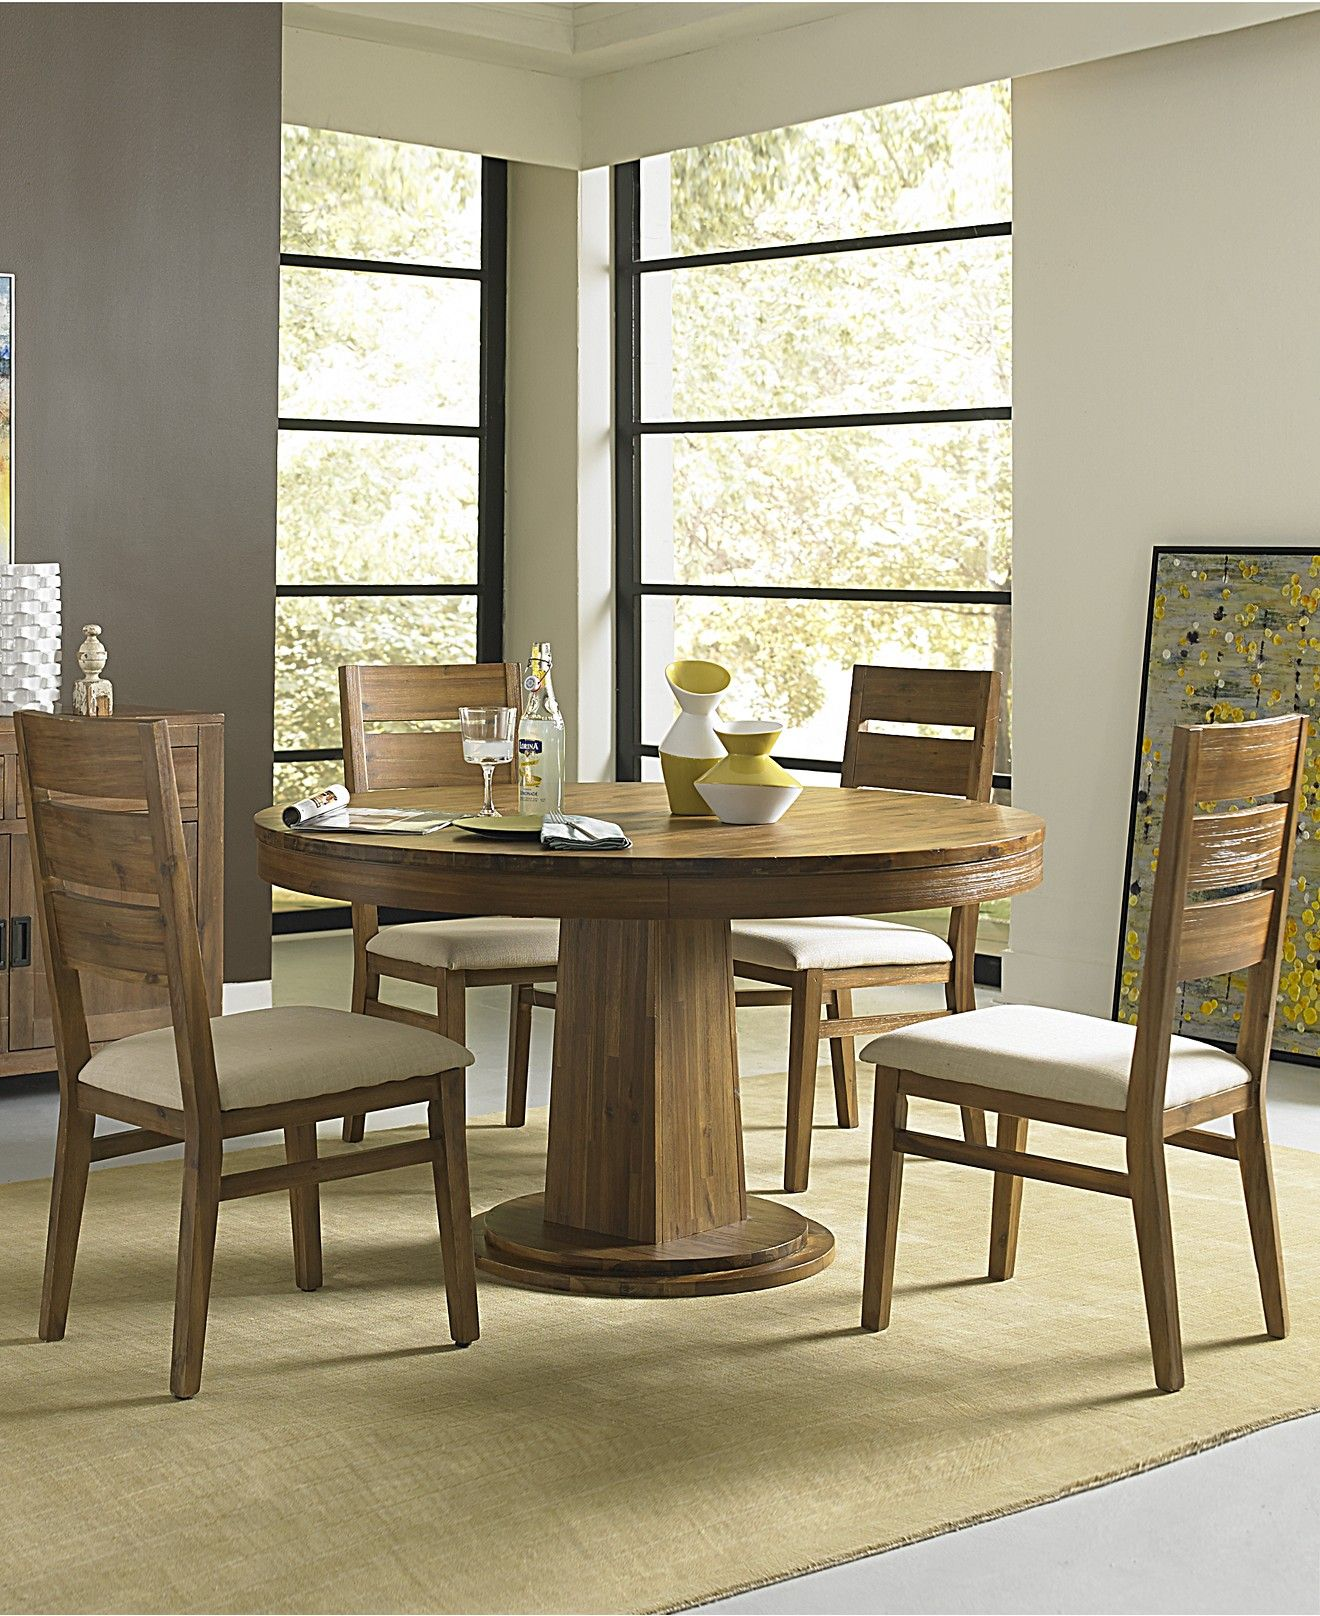 Champagne Round Dining Table Shop All Dining Room - Macy's champagne dining table